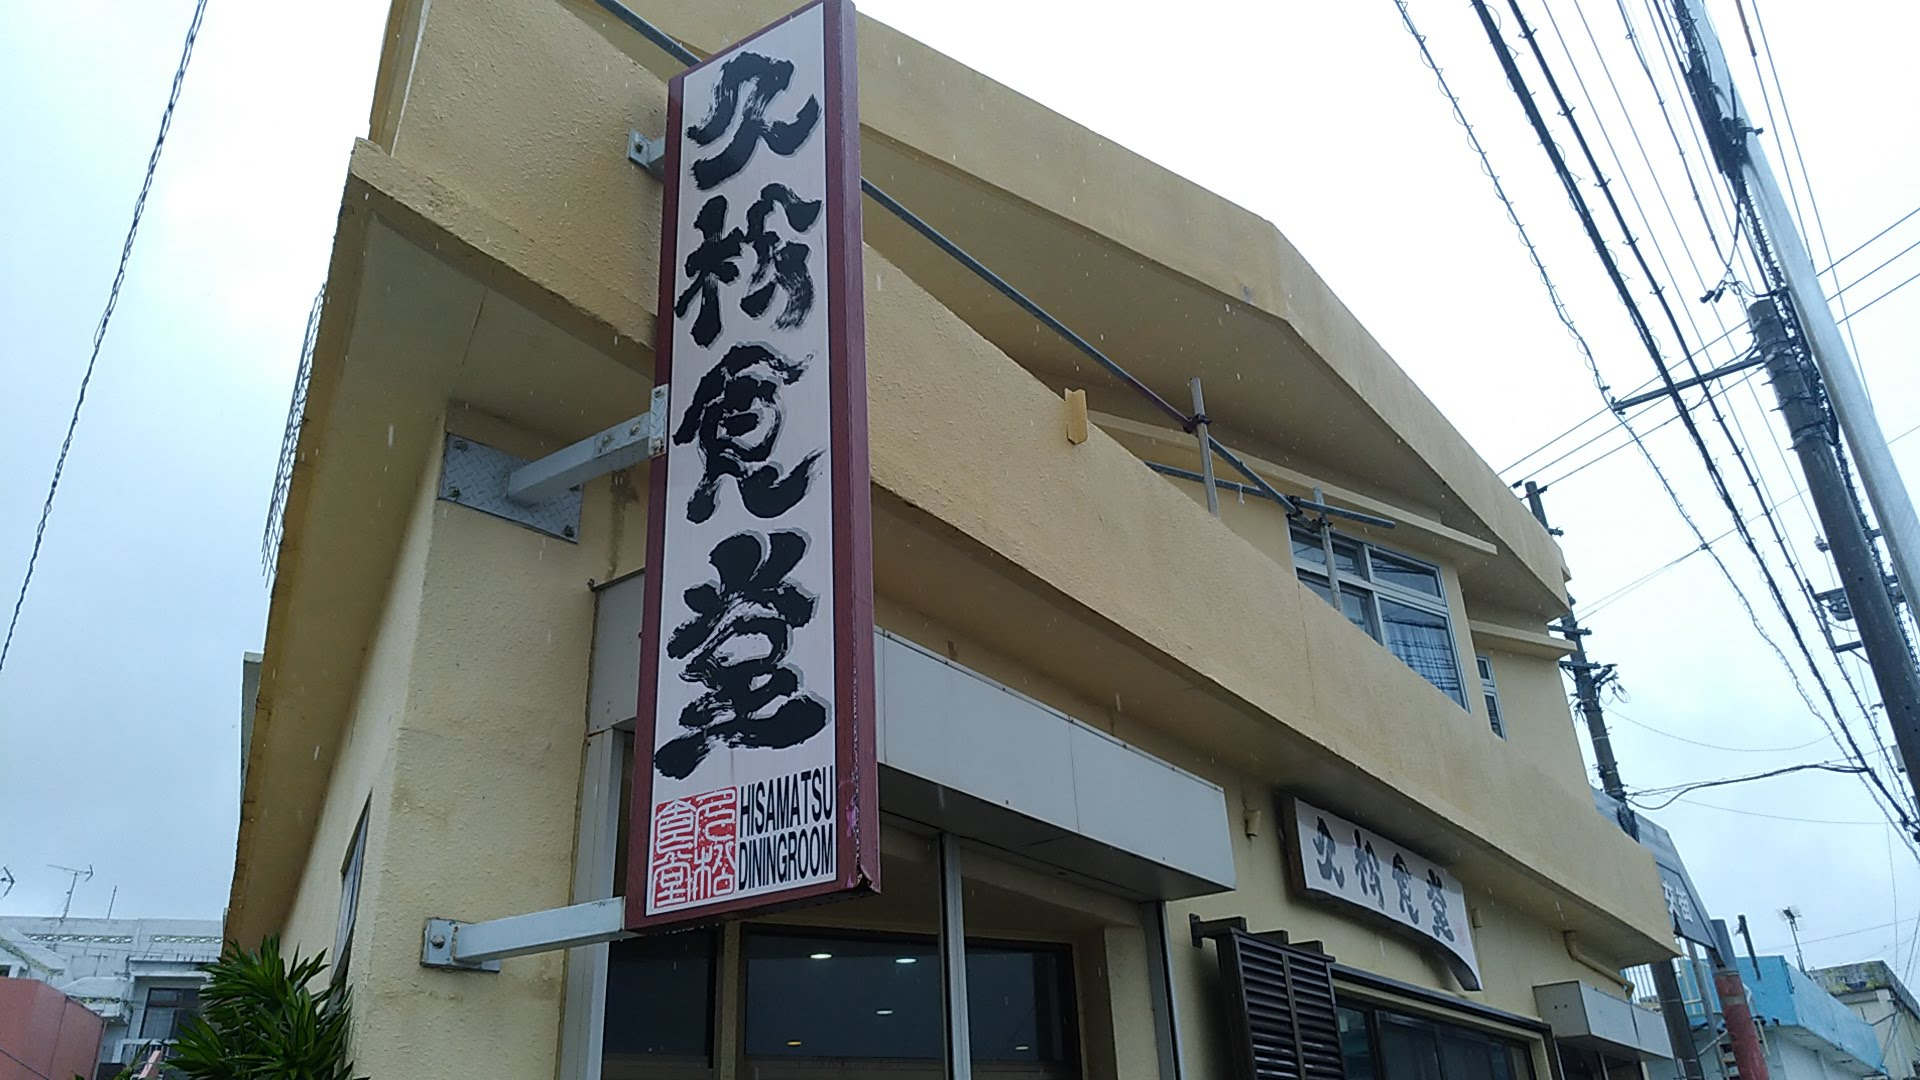 Speaking of Chii-Irichya, Hisamatsu Shokudou in Kintown